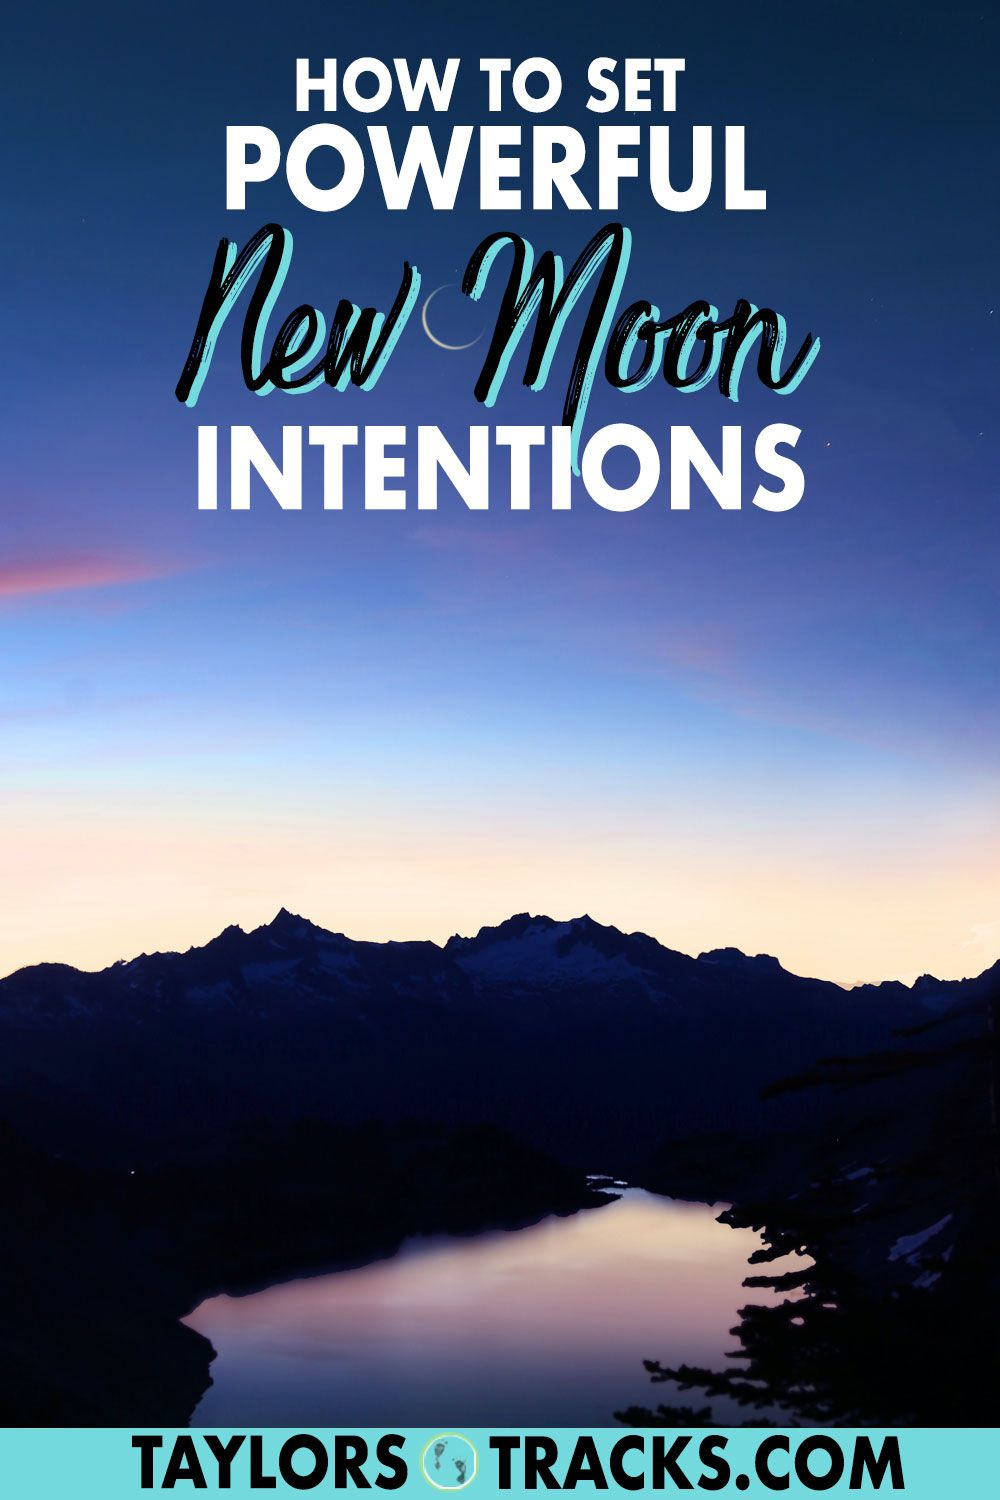 How to set powerful new moon intentions in 2020 new moon